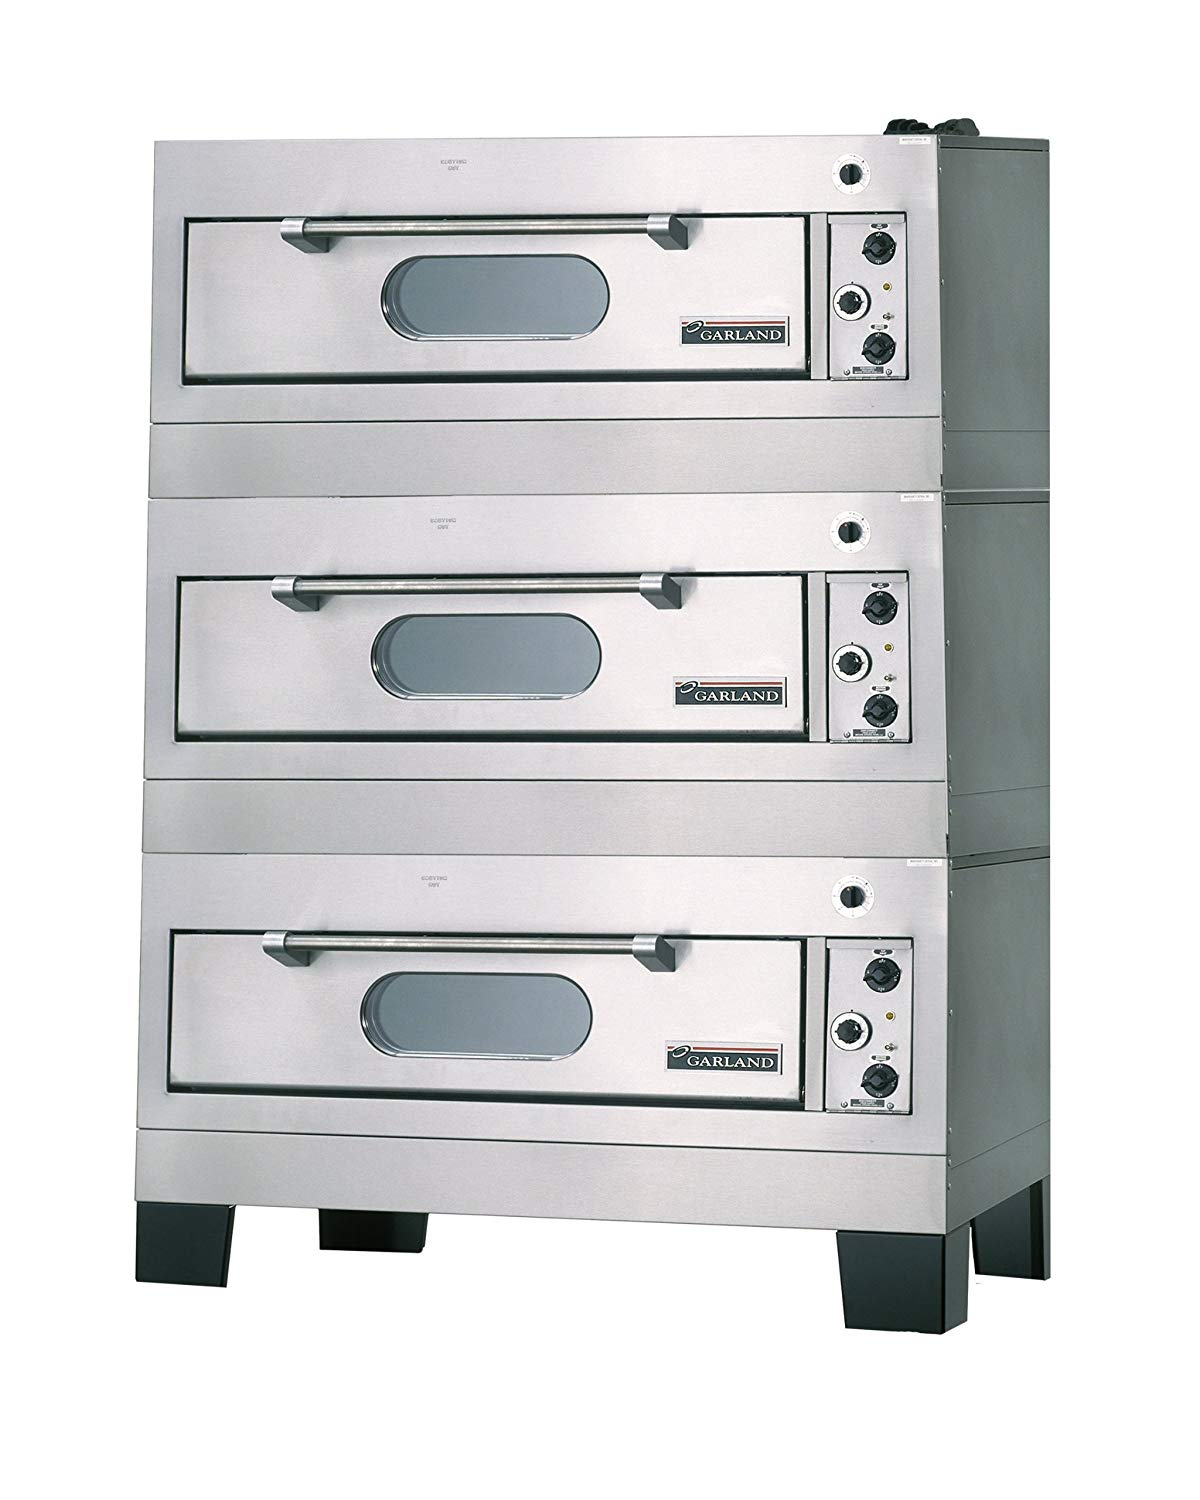 Garland E2111 Electric Triple Deck Bake Oven - Commercial Oven